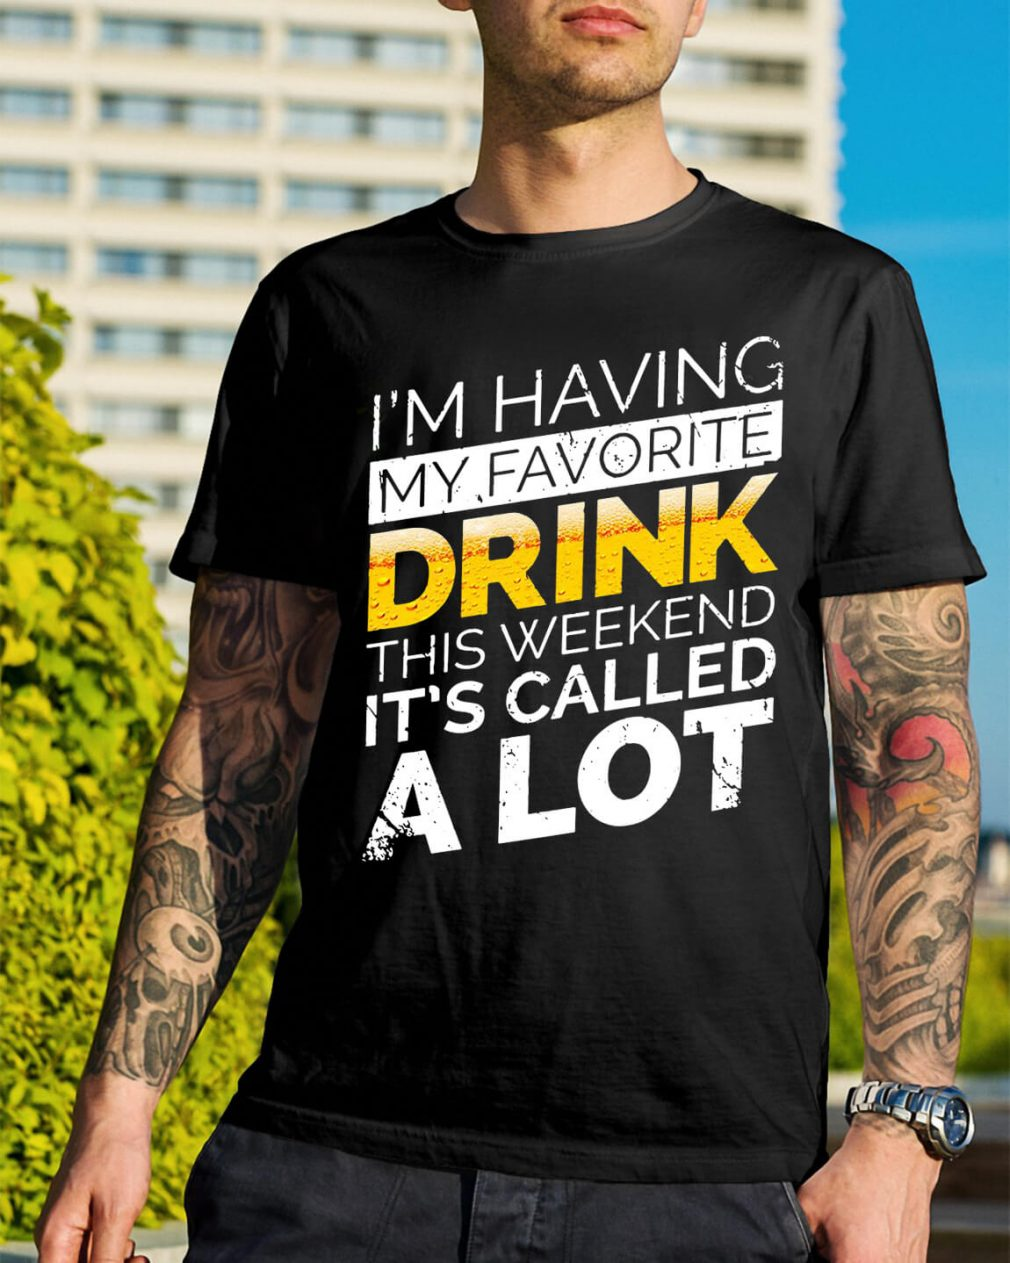 I'm having my favorite drink this weekend it's called a lot shirt